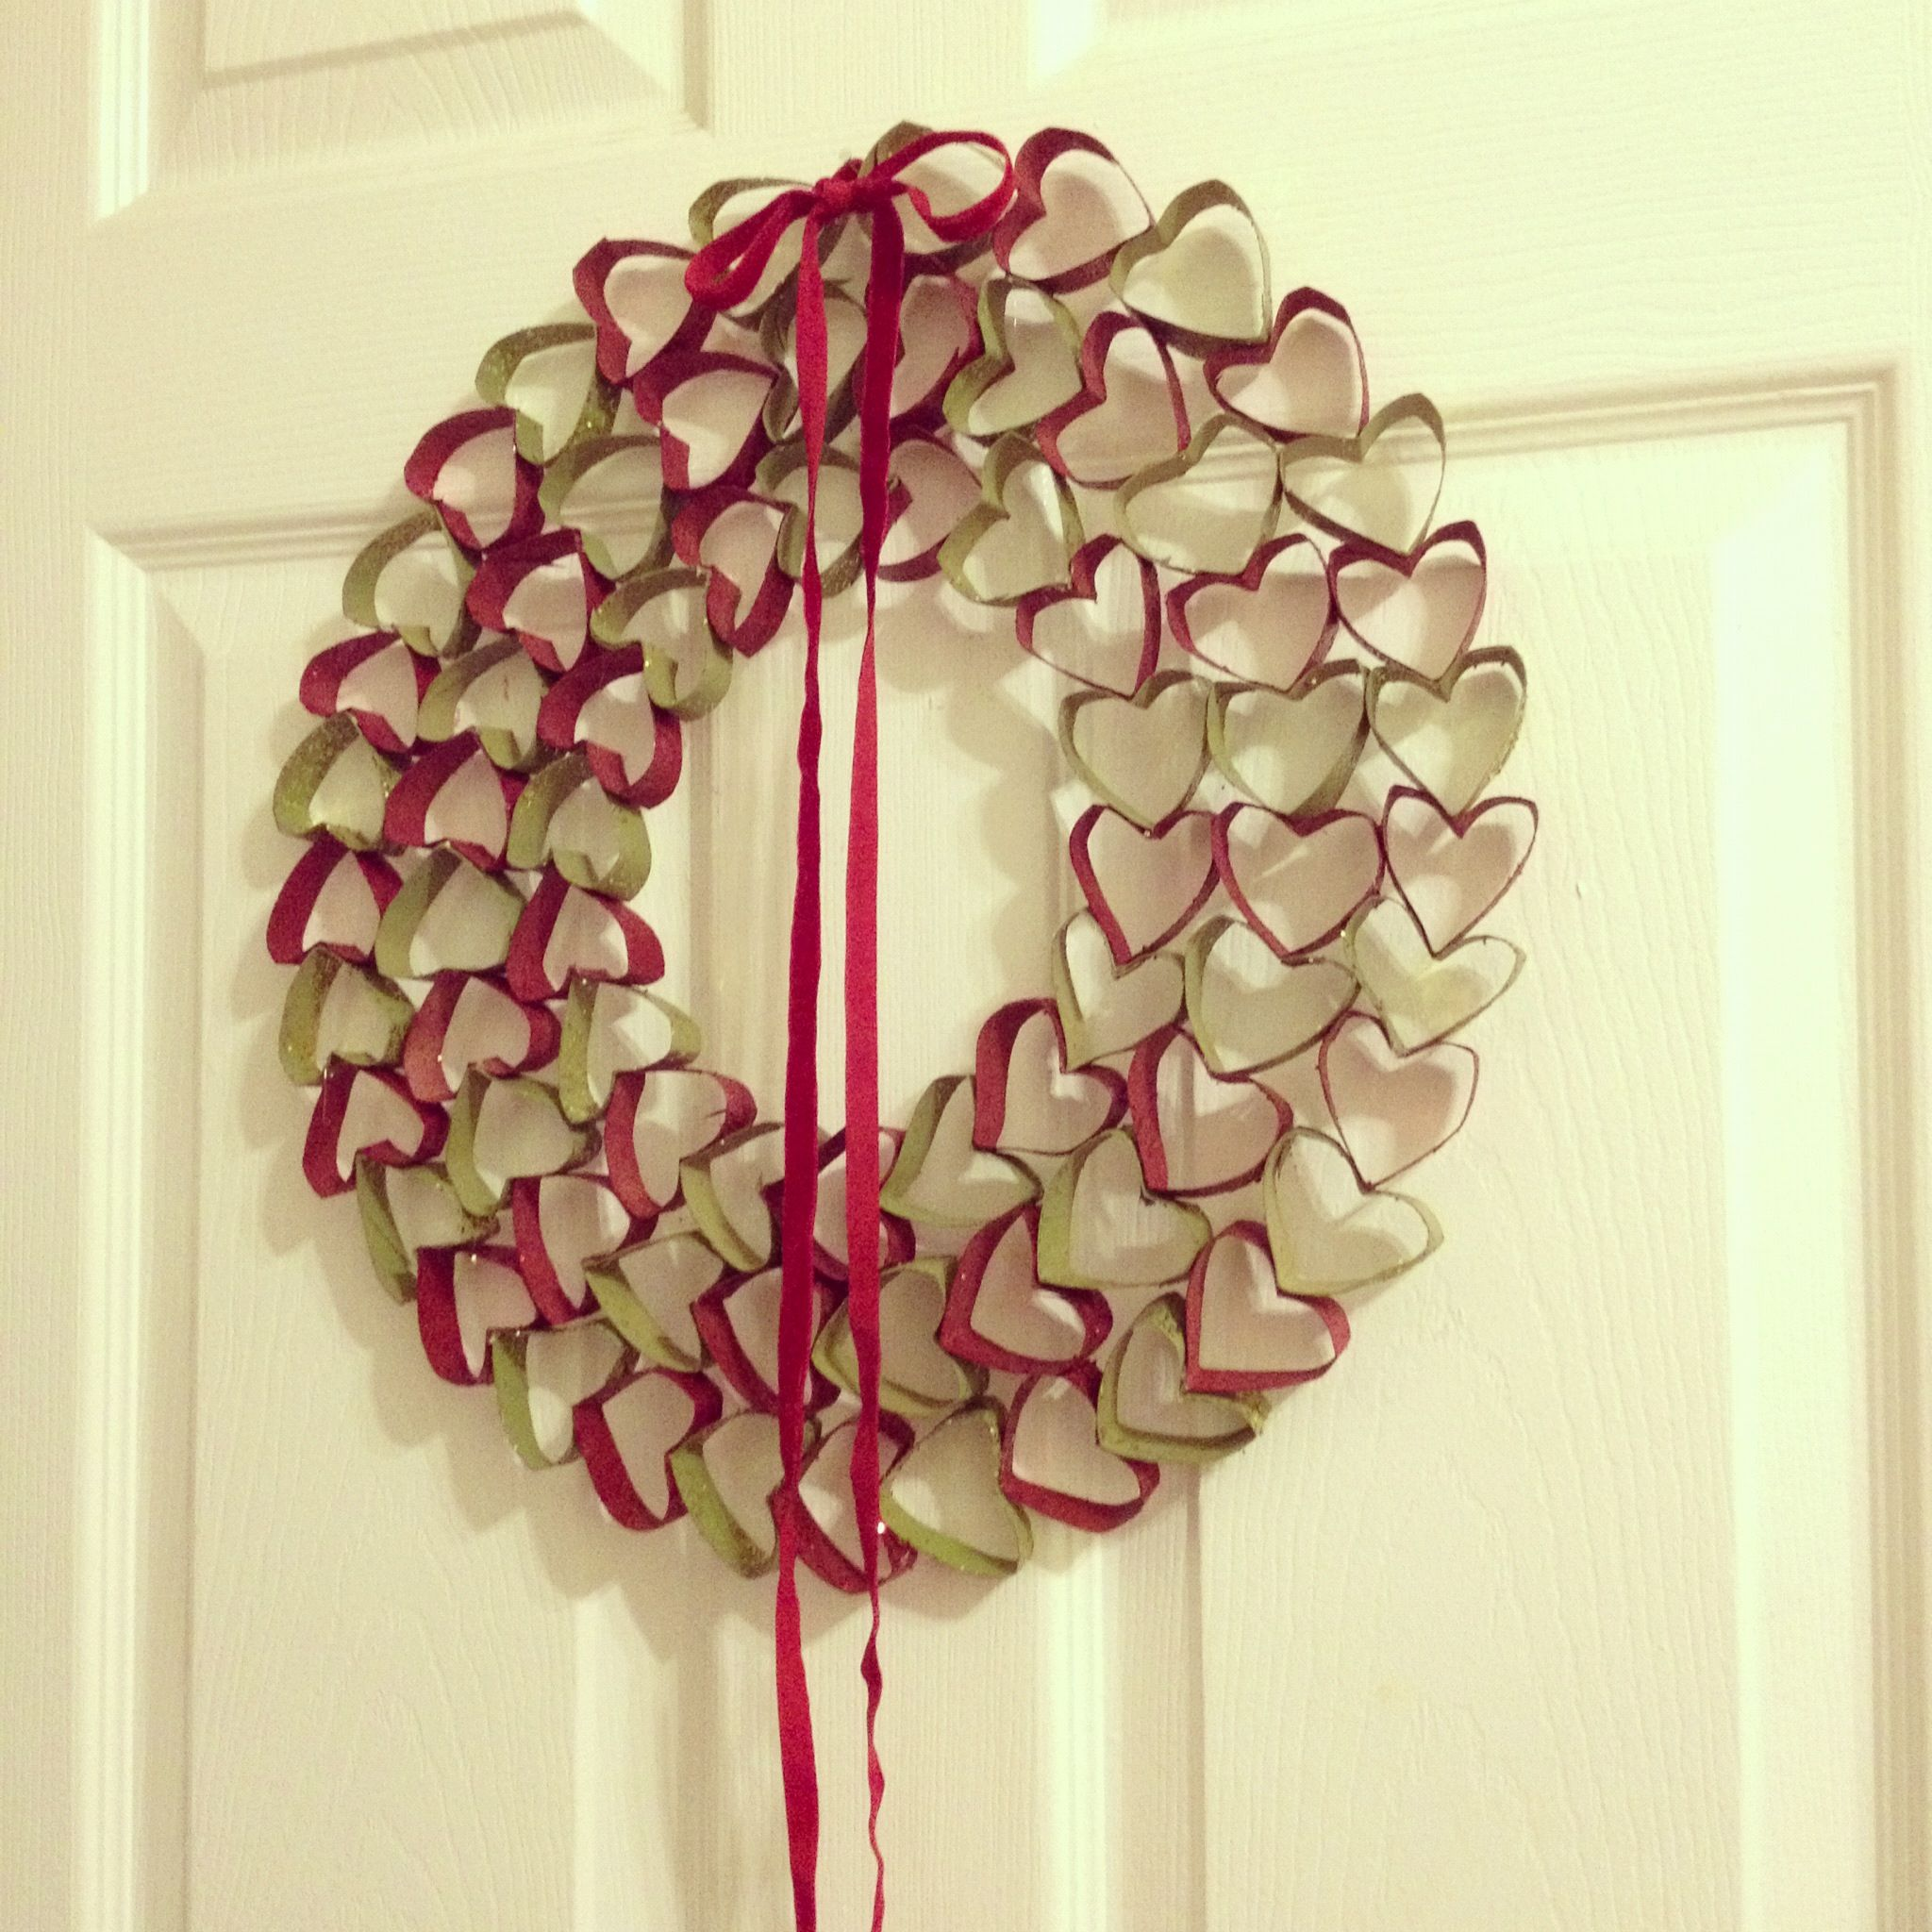 Finally made it myself! Wreath of Love 1) Collect roughly